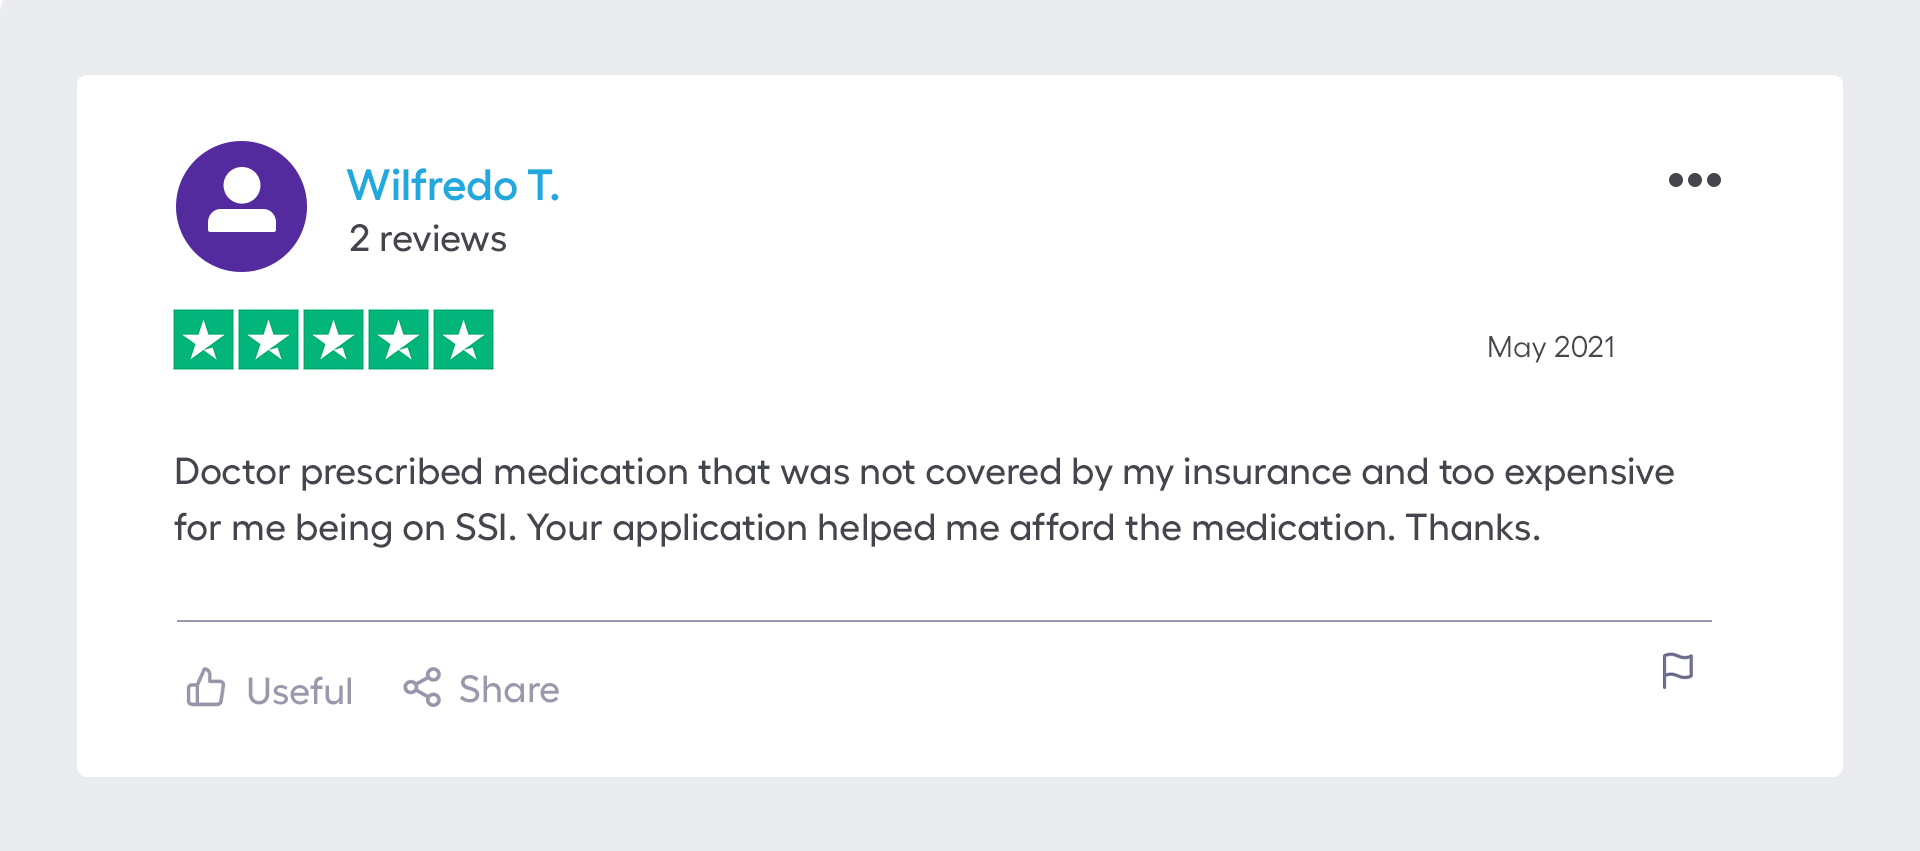 """""""Doctor prescribed medication that was not covered by my insurance and too expensive for me being on SSI. Your application helped me afford the medication. Thanks."""""""